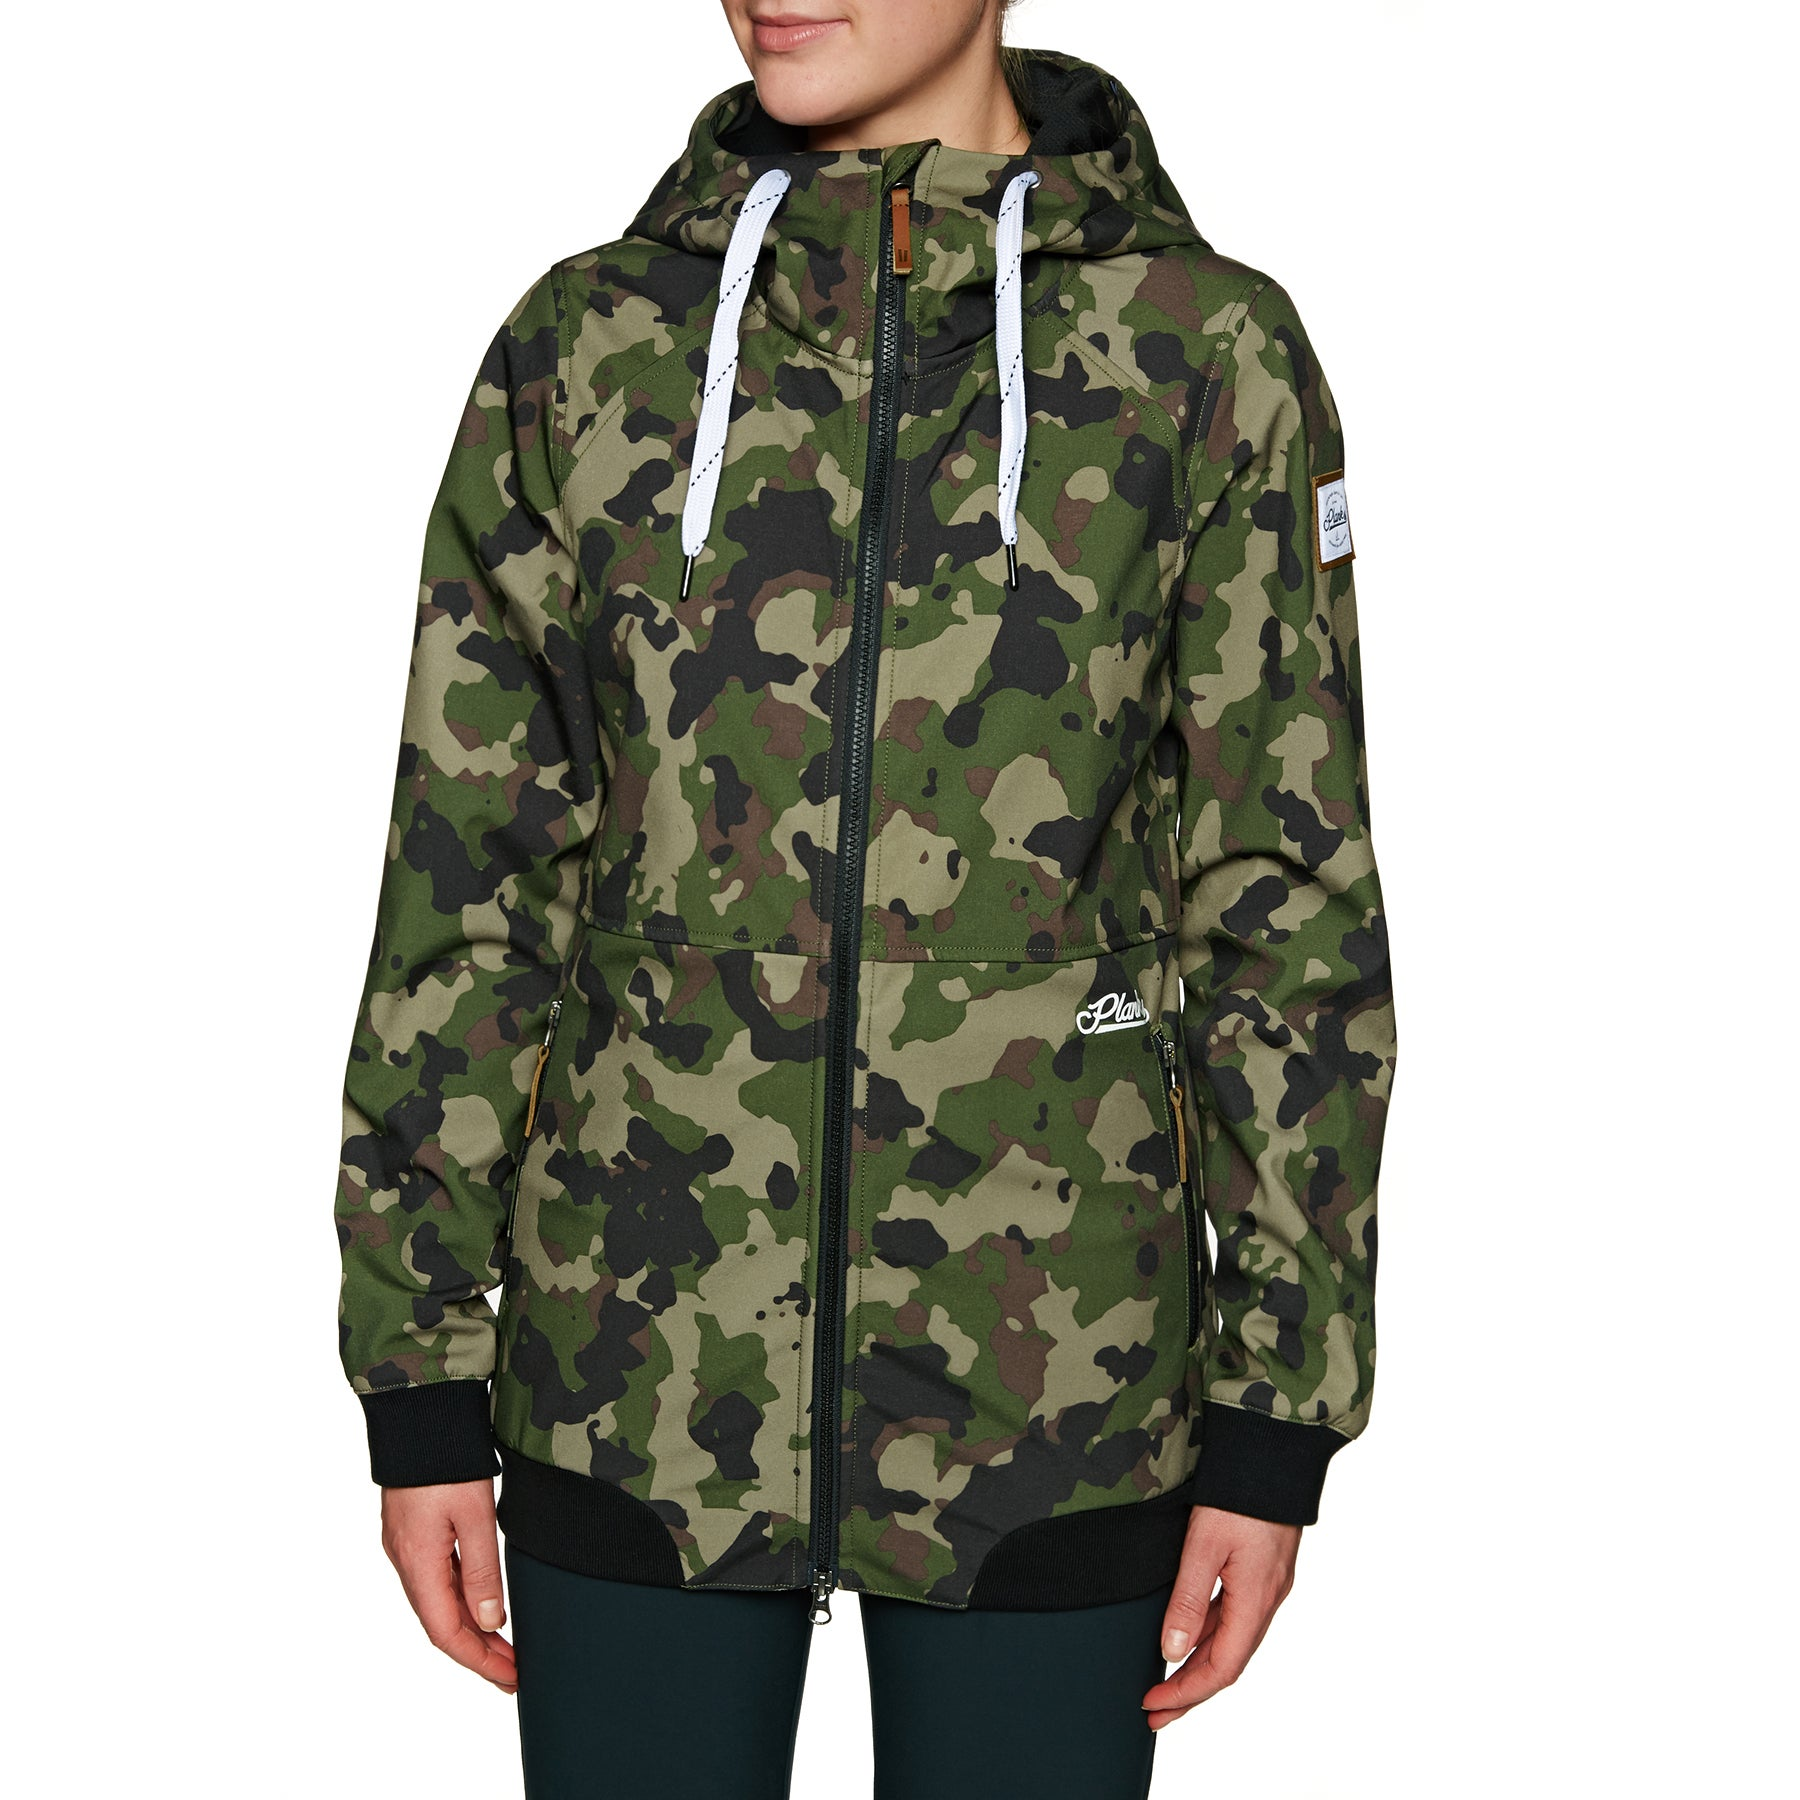 Giacca Snowboard Planks Reunion Soft Shell - British Camo